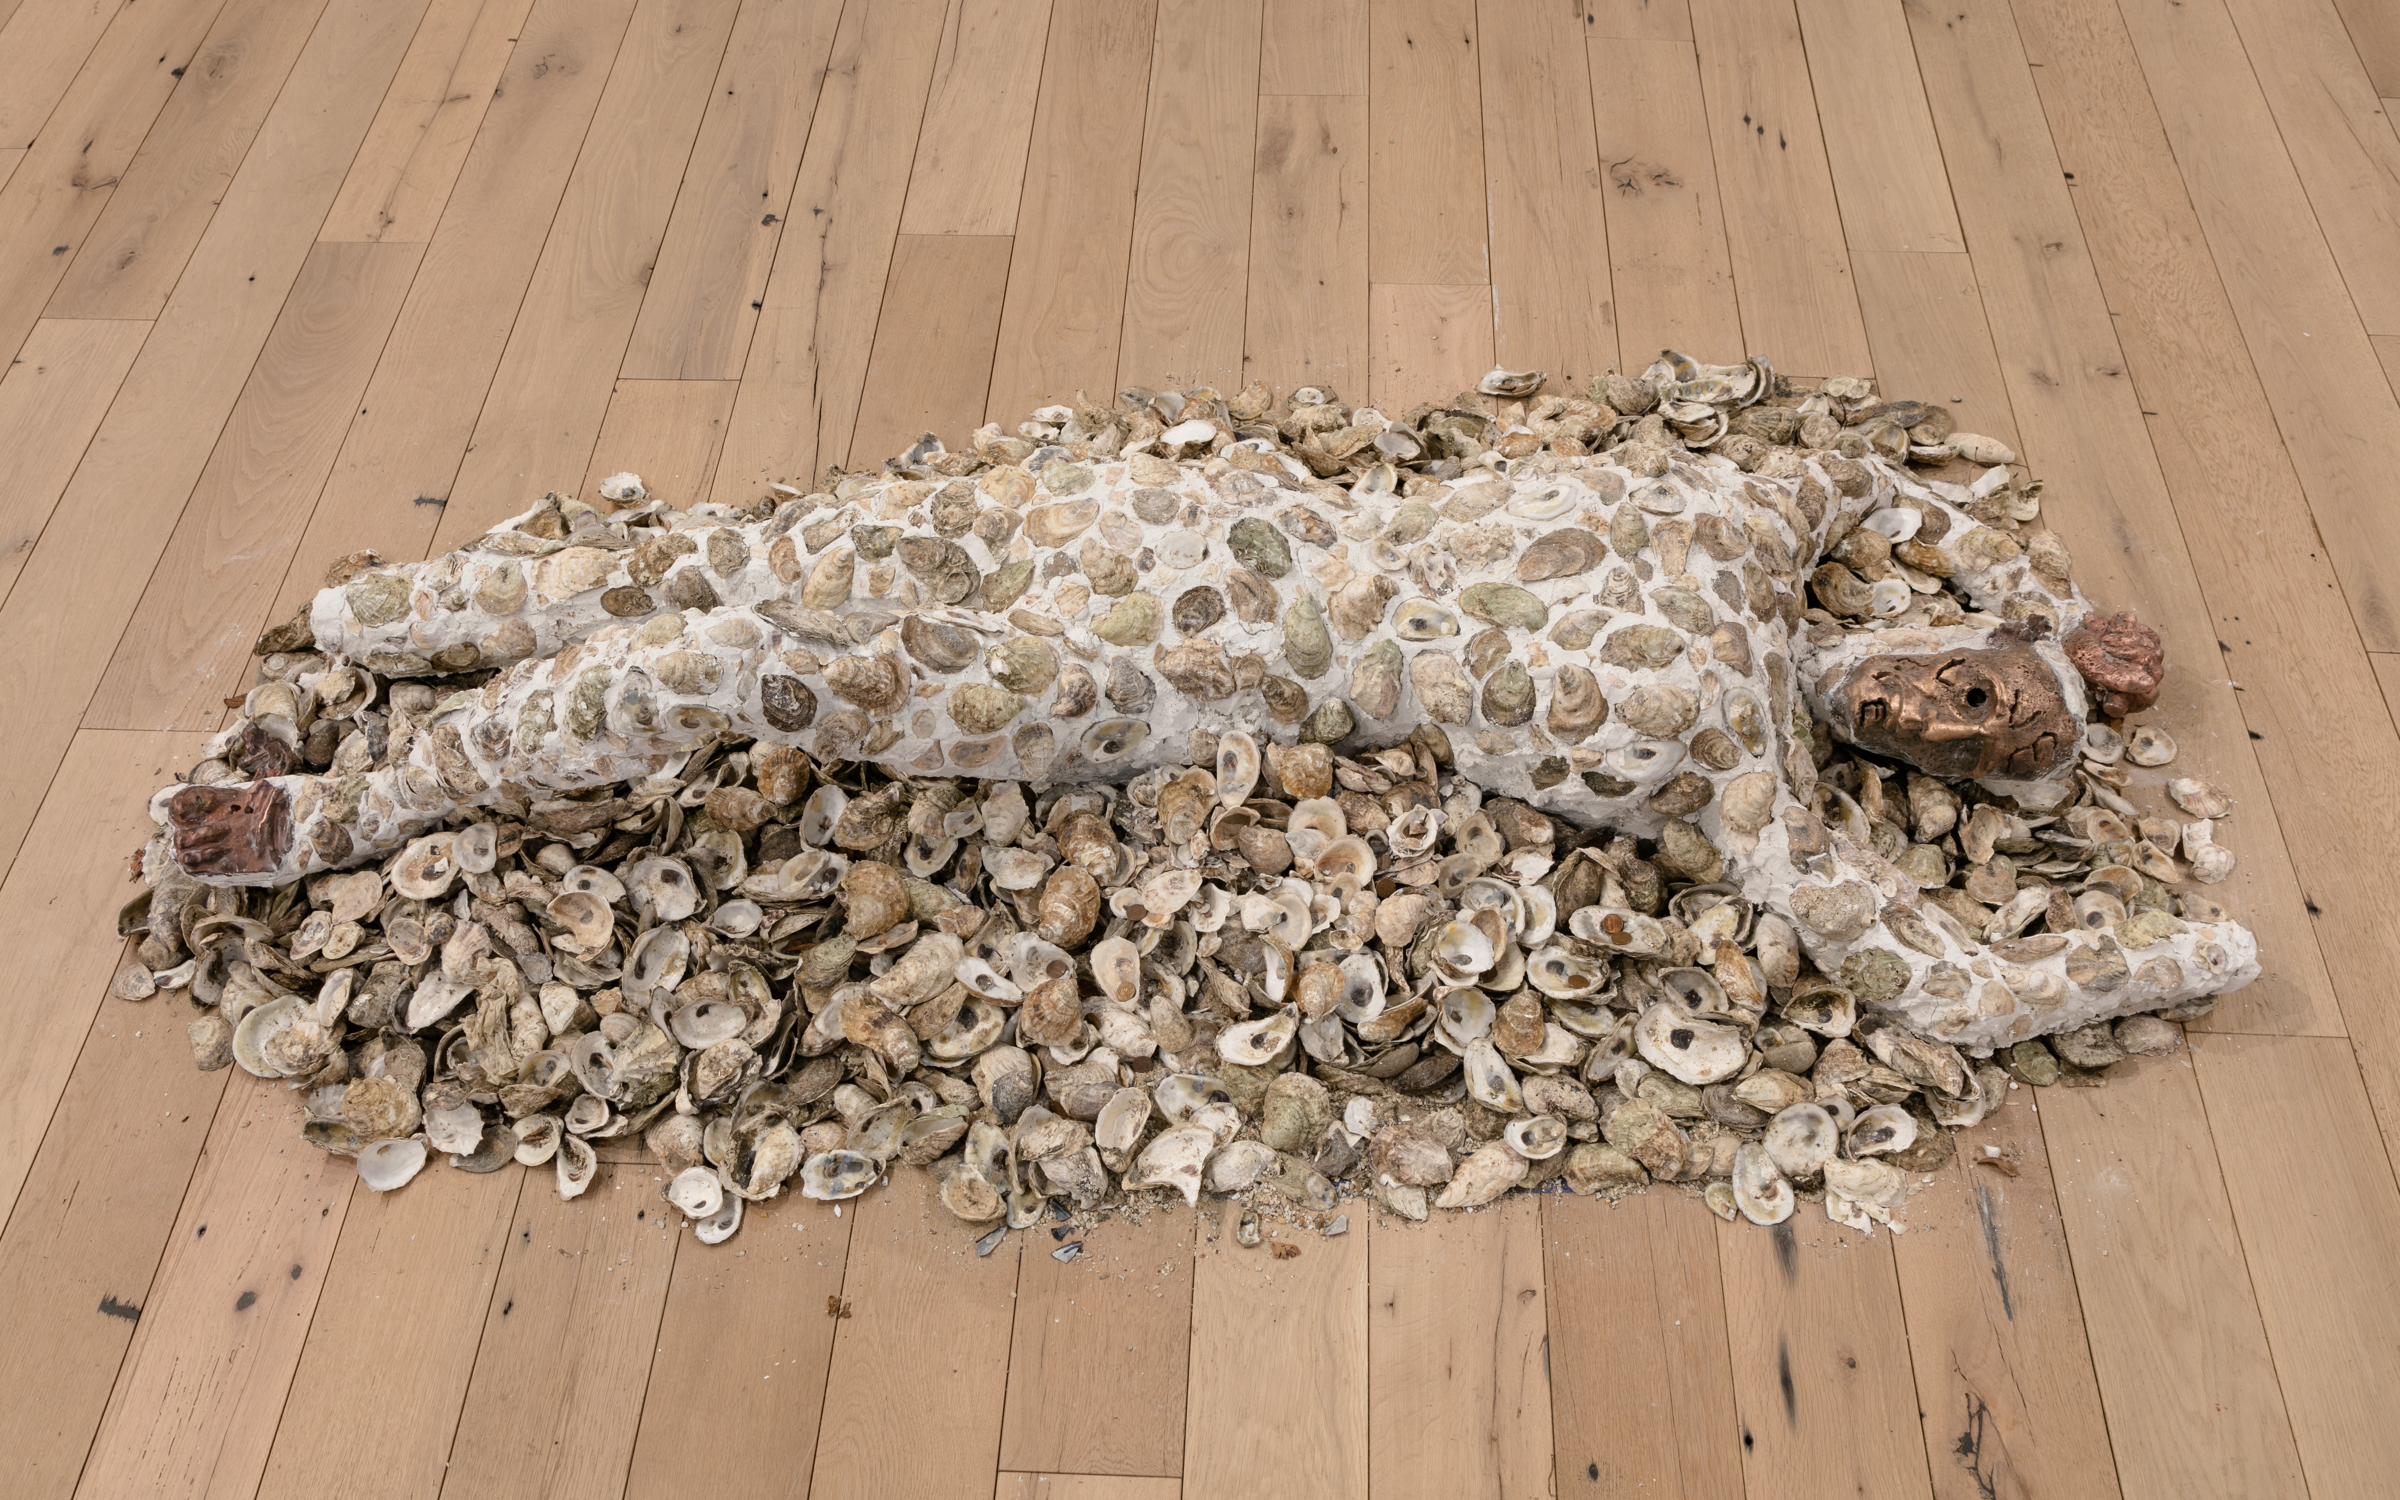 Jory Rabinovitz,  Death of Abel,  2018, tabby, melted pennies and oyster shells, dimensions variable